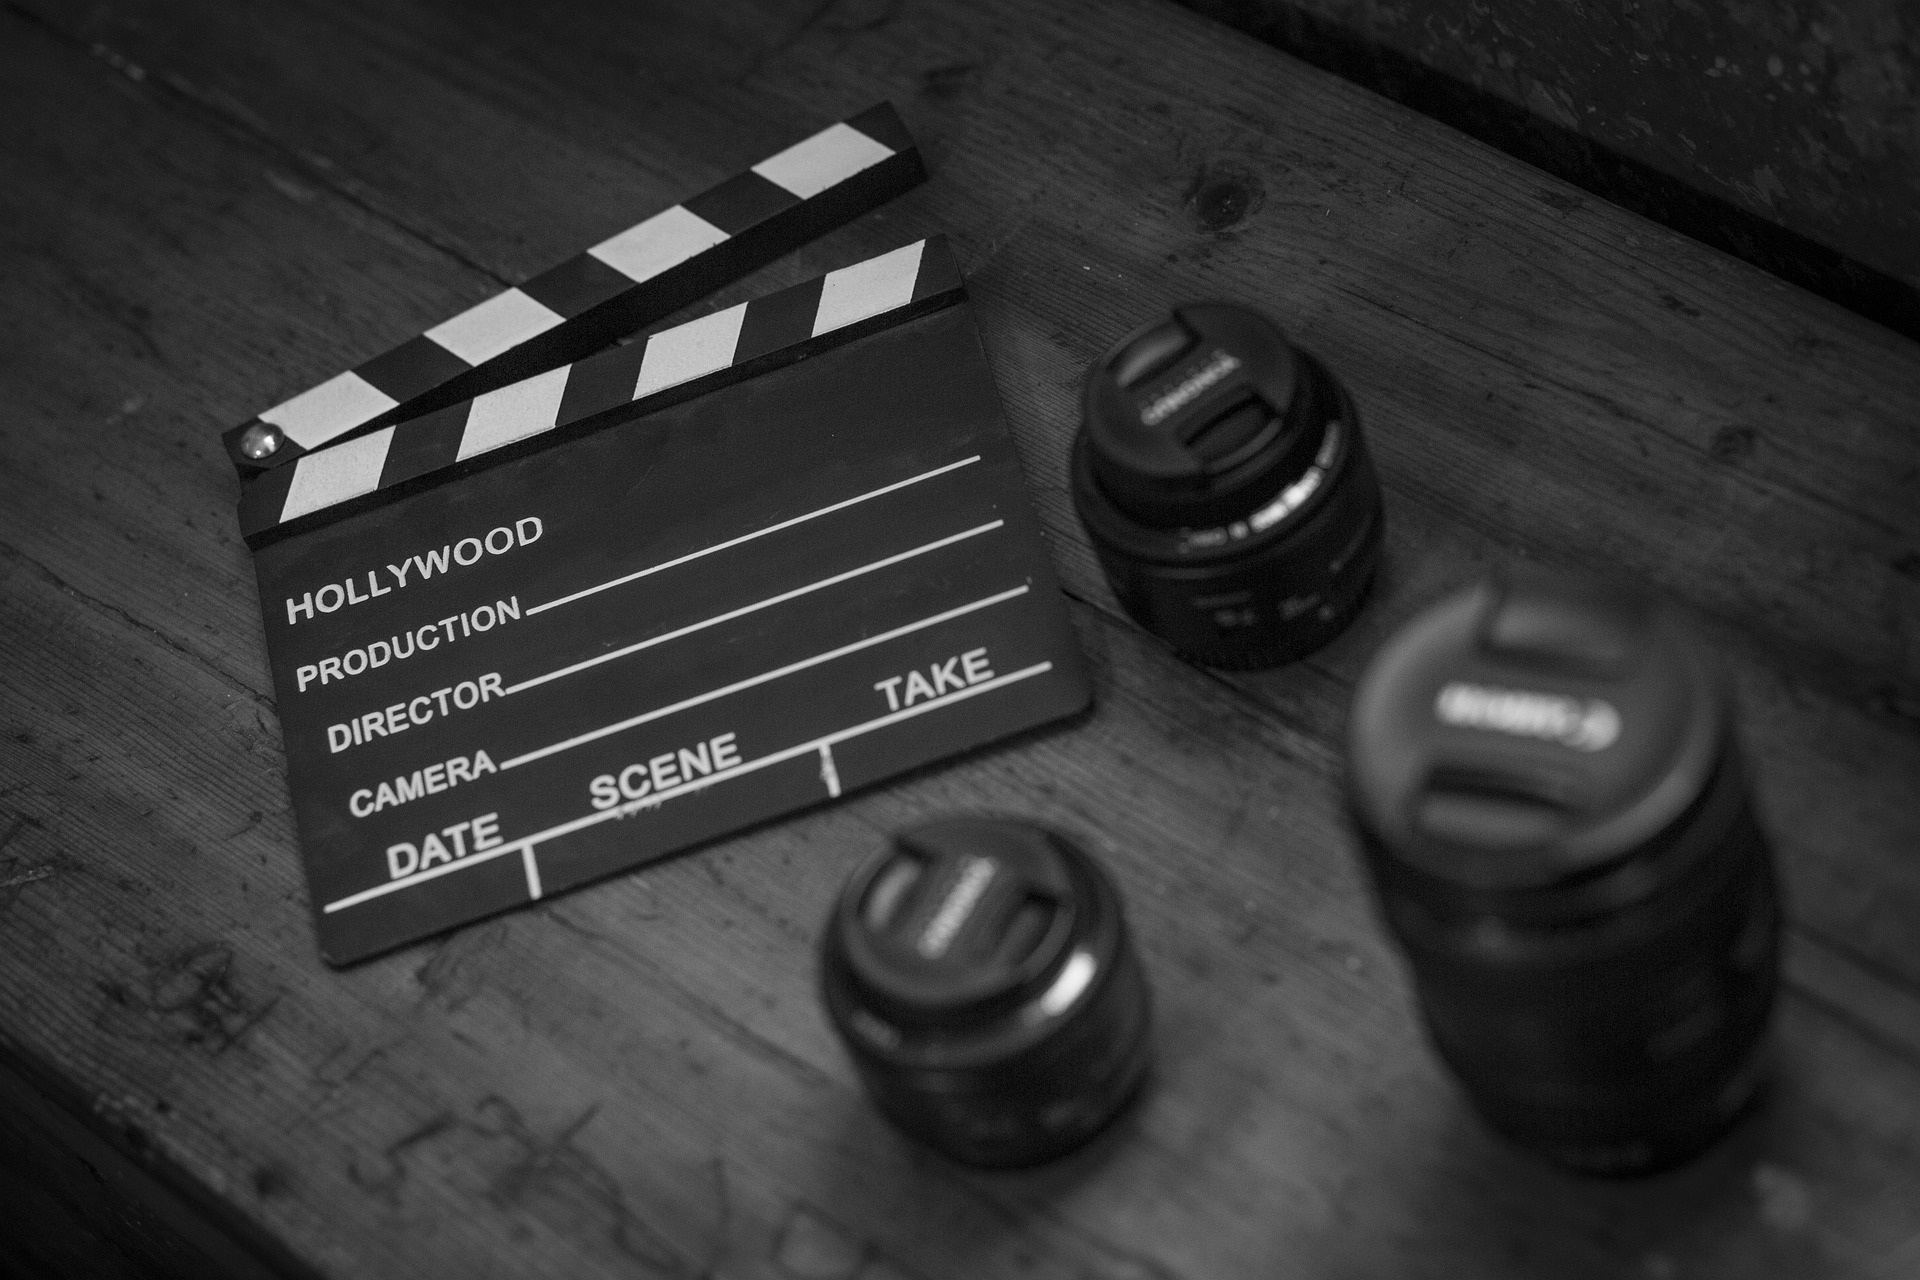 Film recording tools resting on wooden table